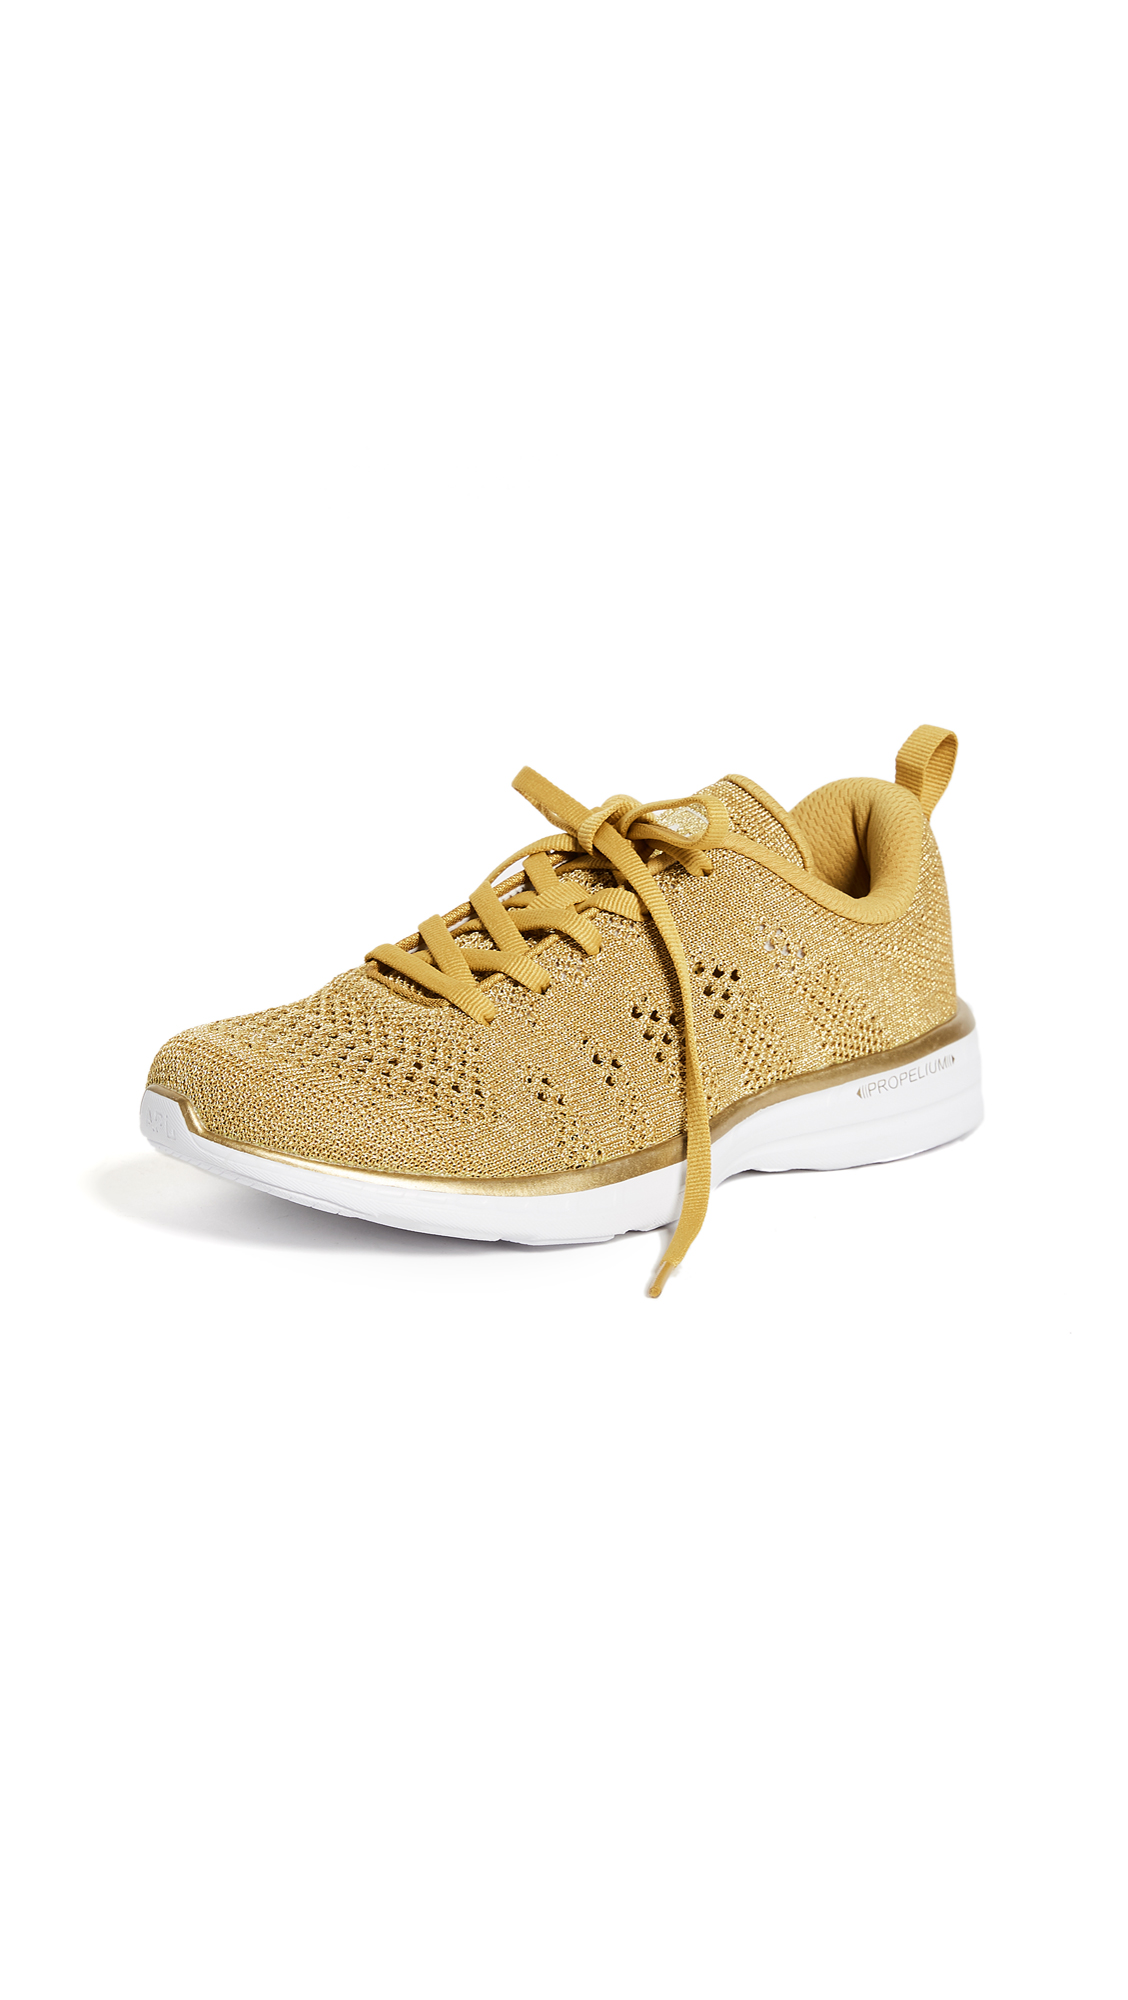 APL: Athletic Propulsion Labs TechLoom Pro Sneakers - 24K